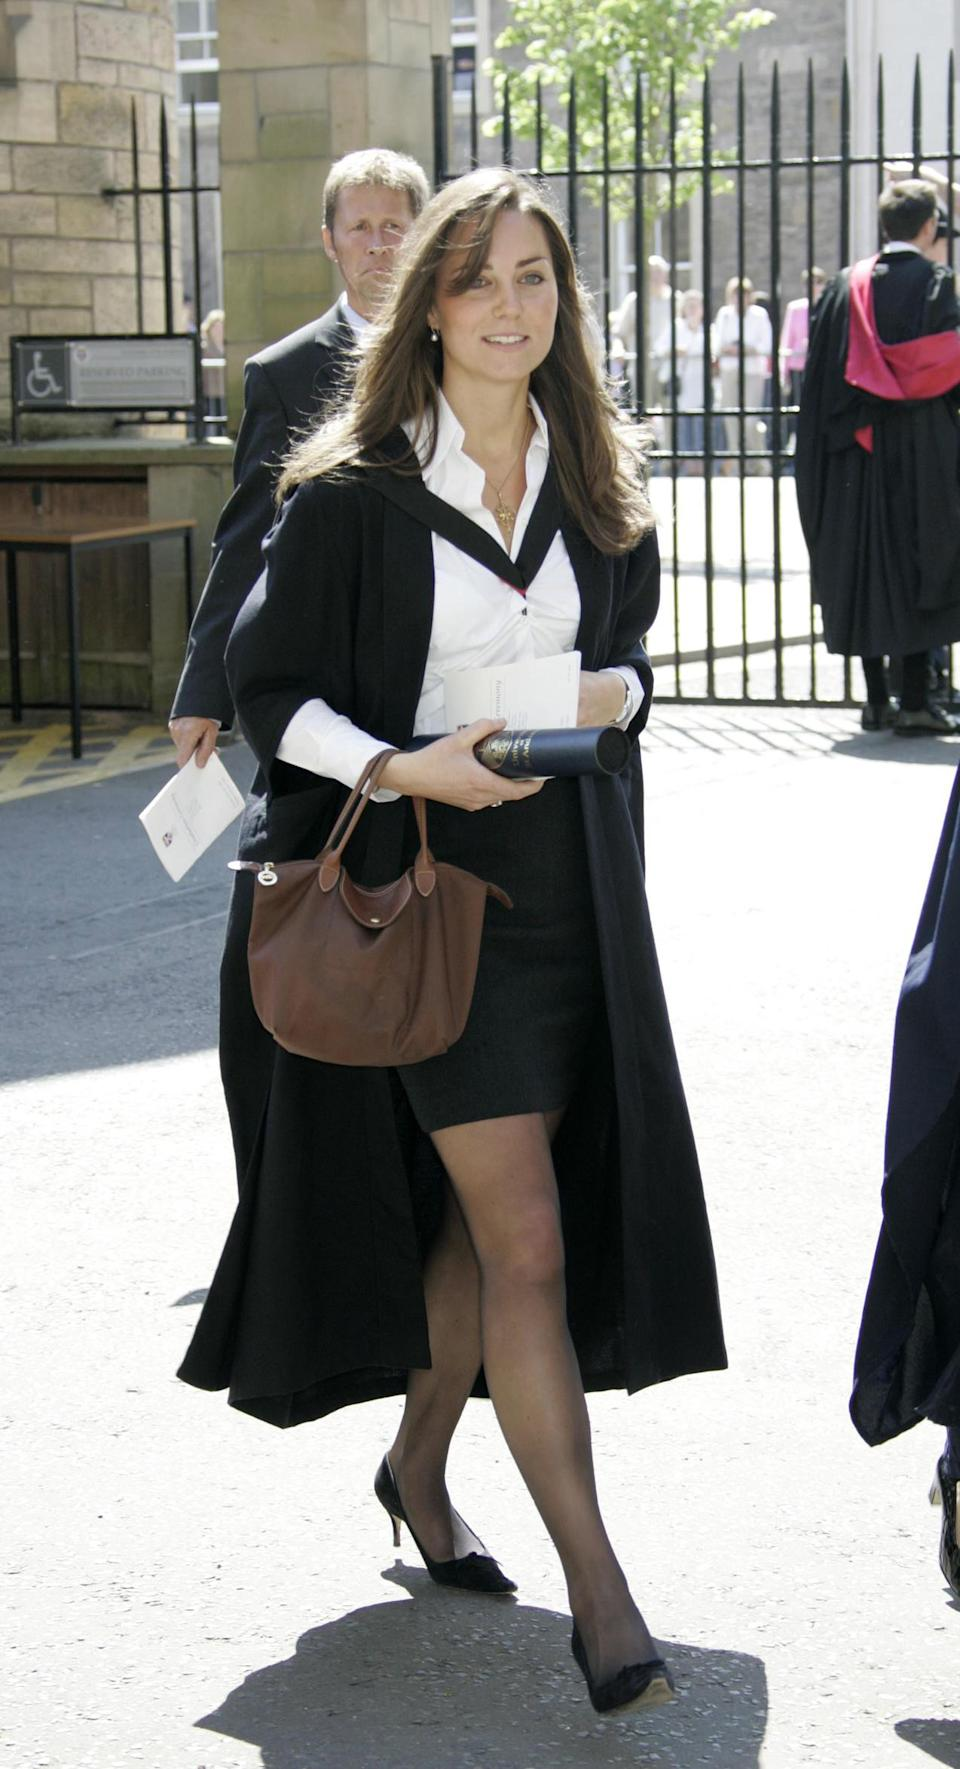 Kate Middleton graduates from St Andrews University in 2005 [Photo: Getty]